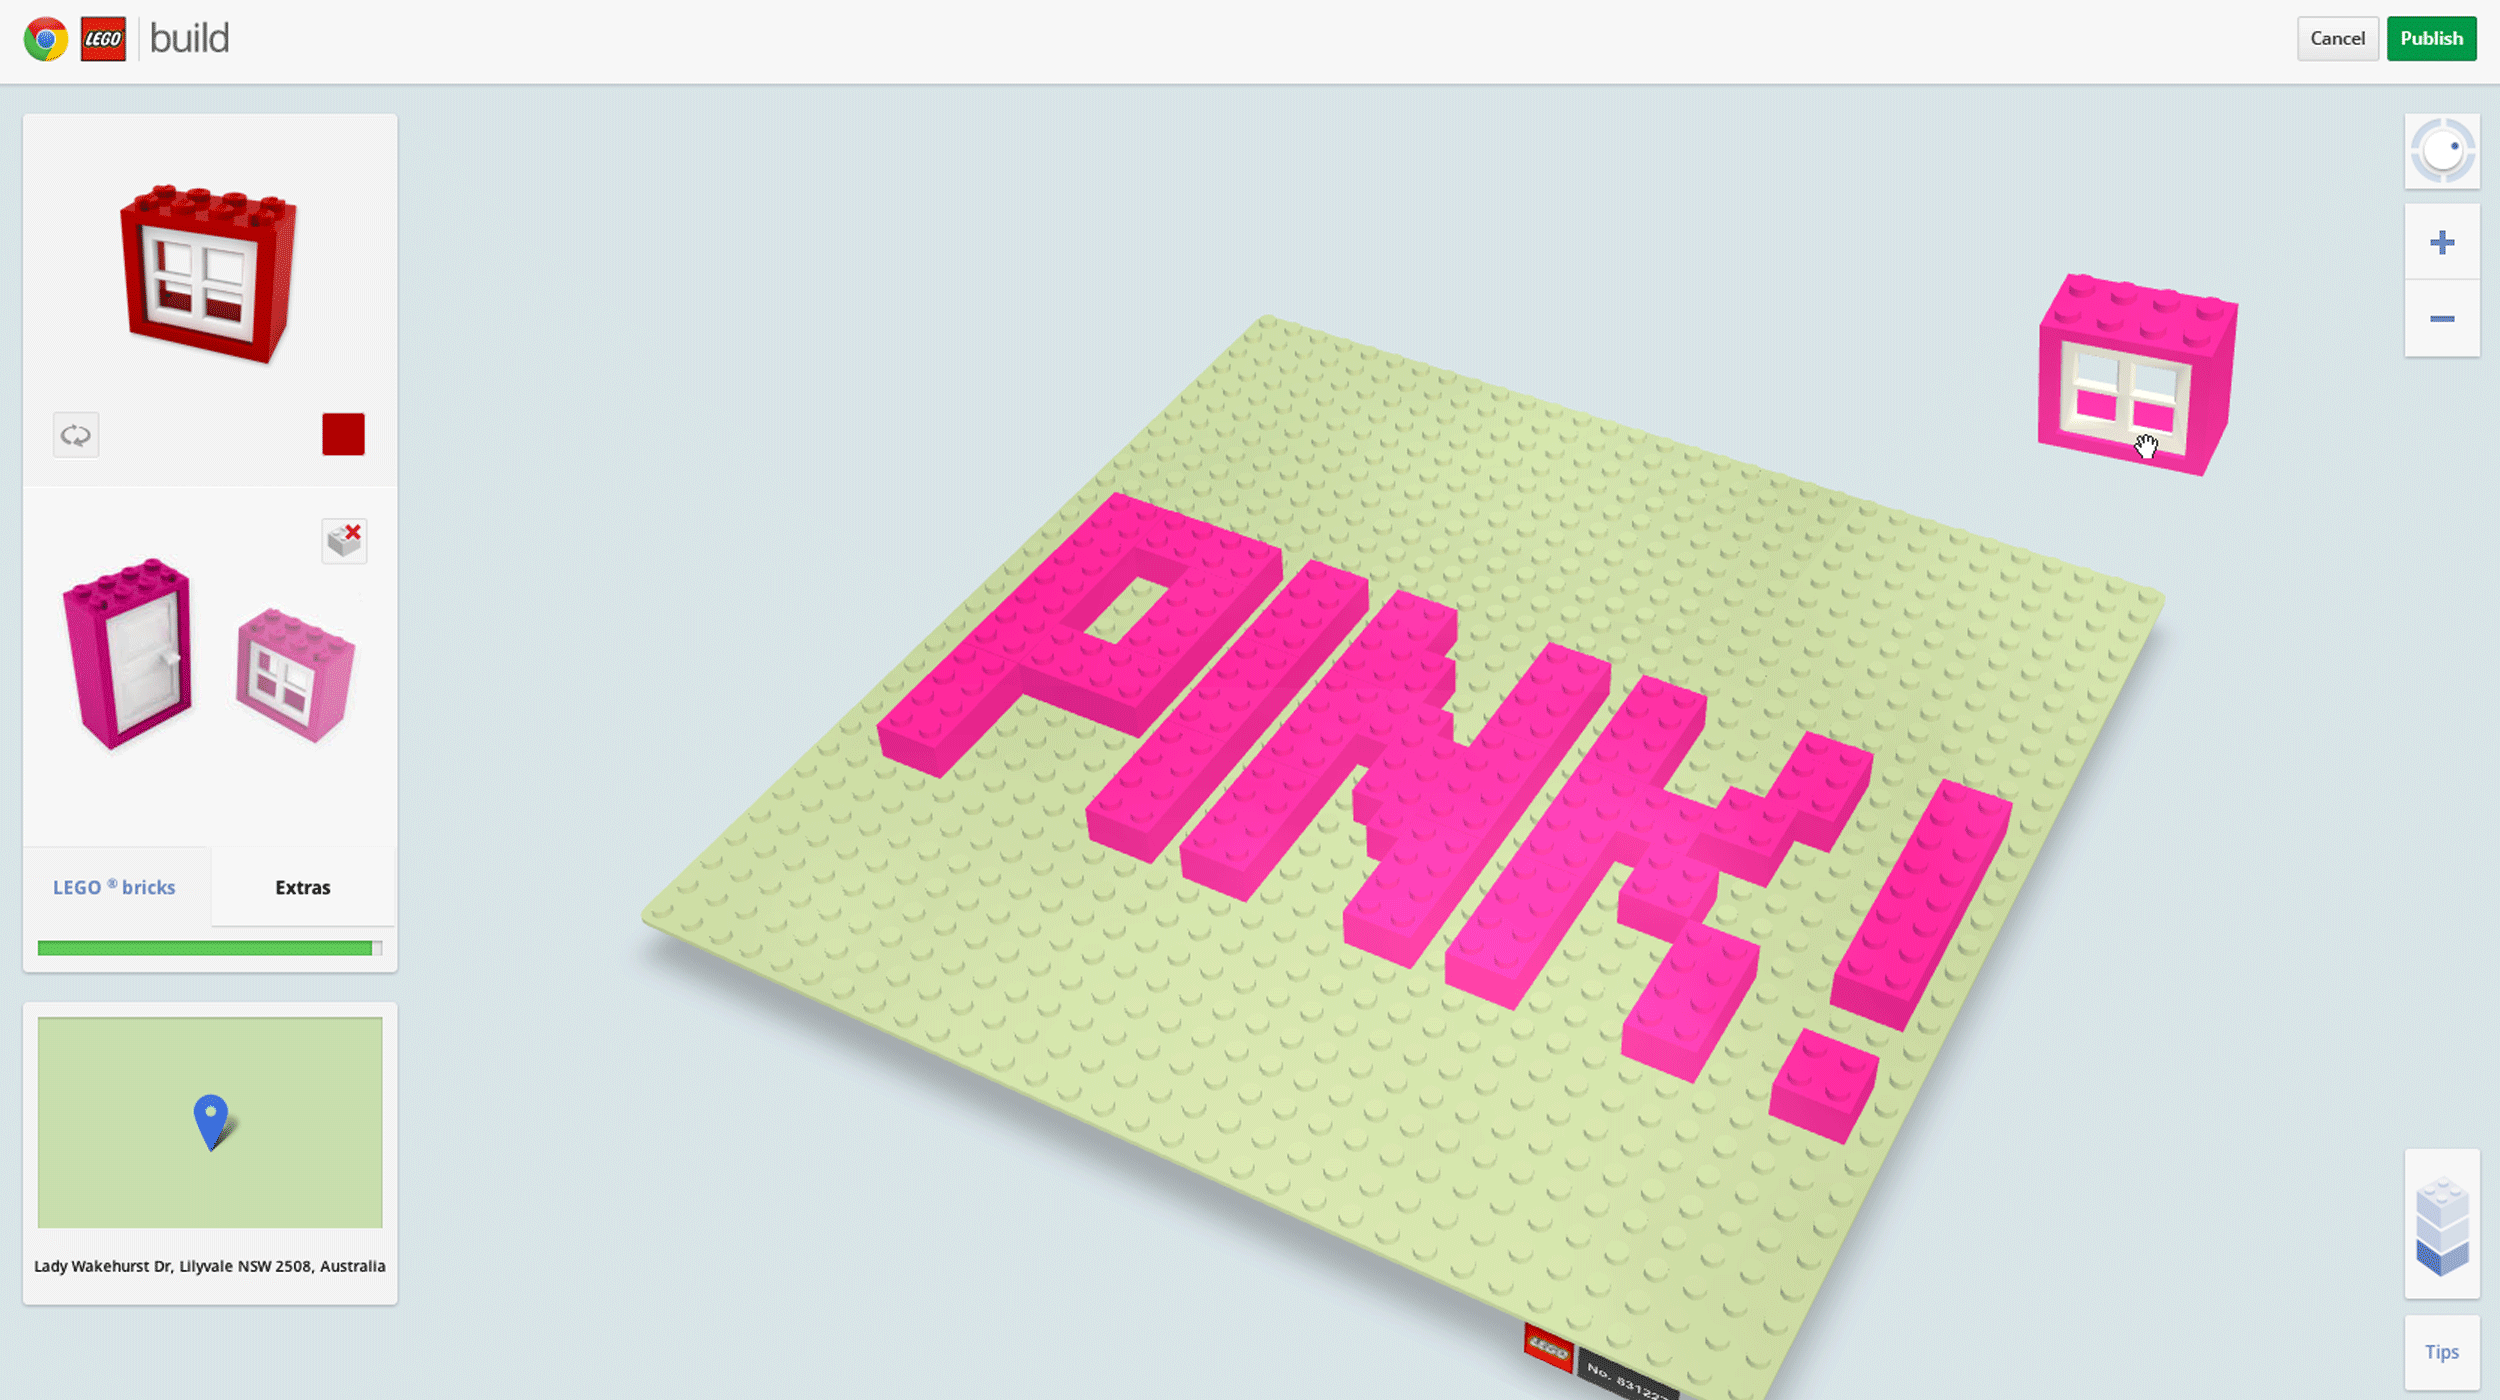 BWC_site-2018BWC-PINK-HACK.png